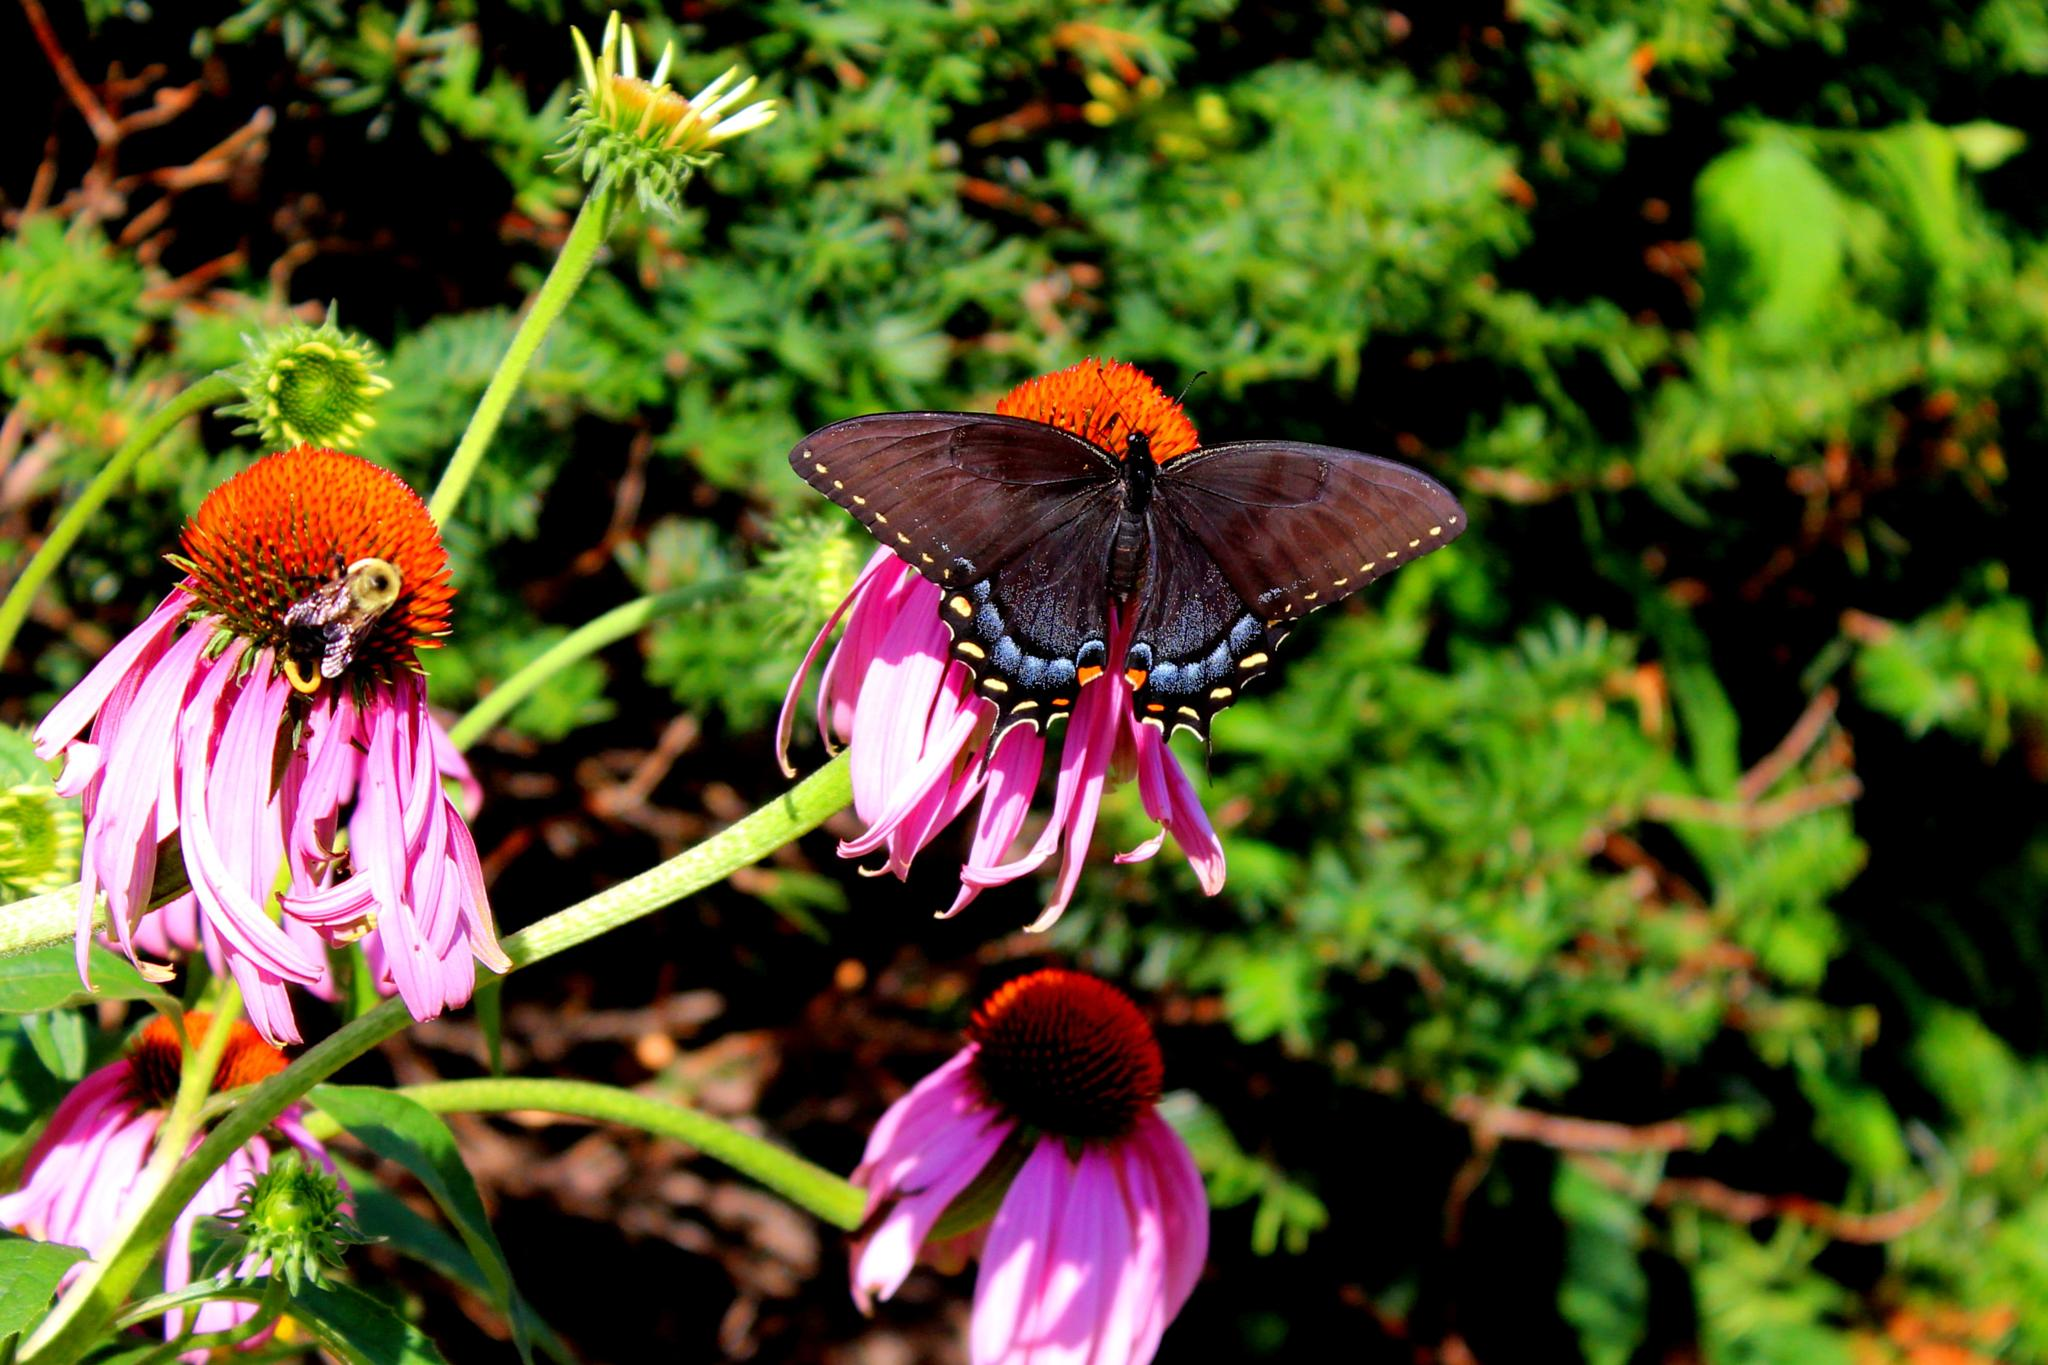 Butterfly in Church Flowerbed 2 by Presnell Photography